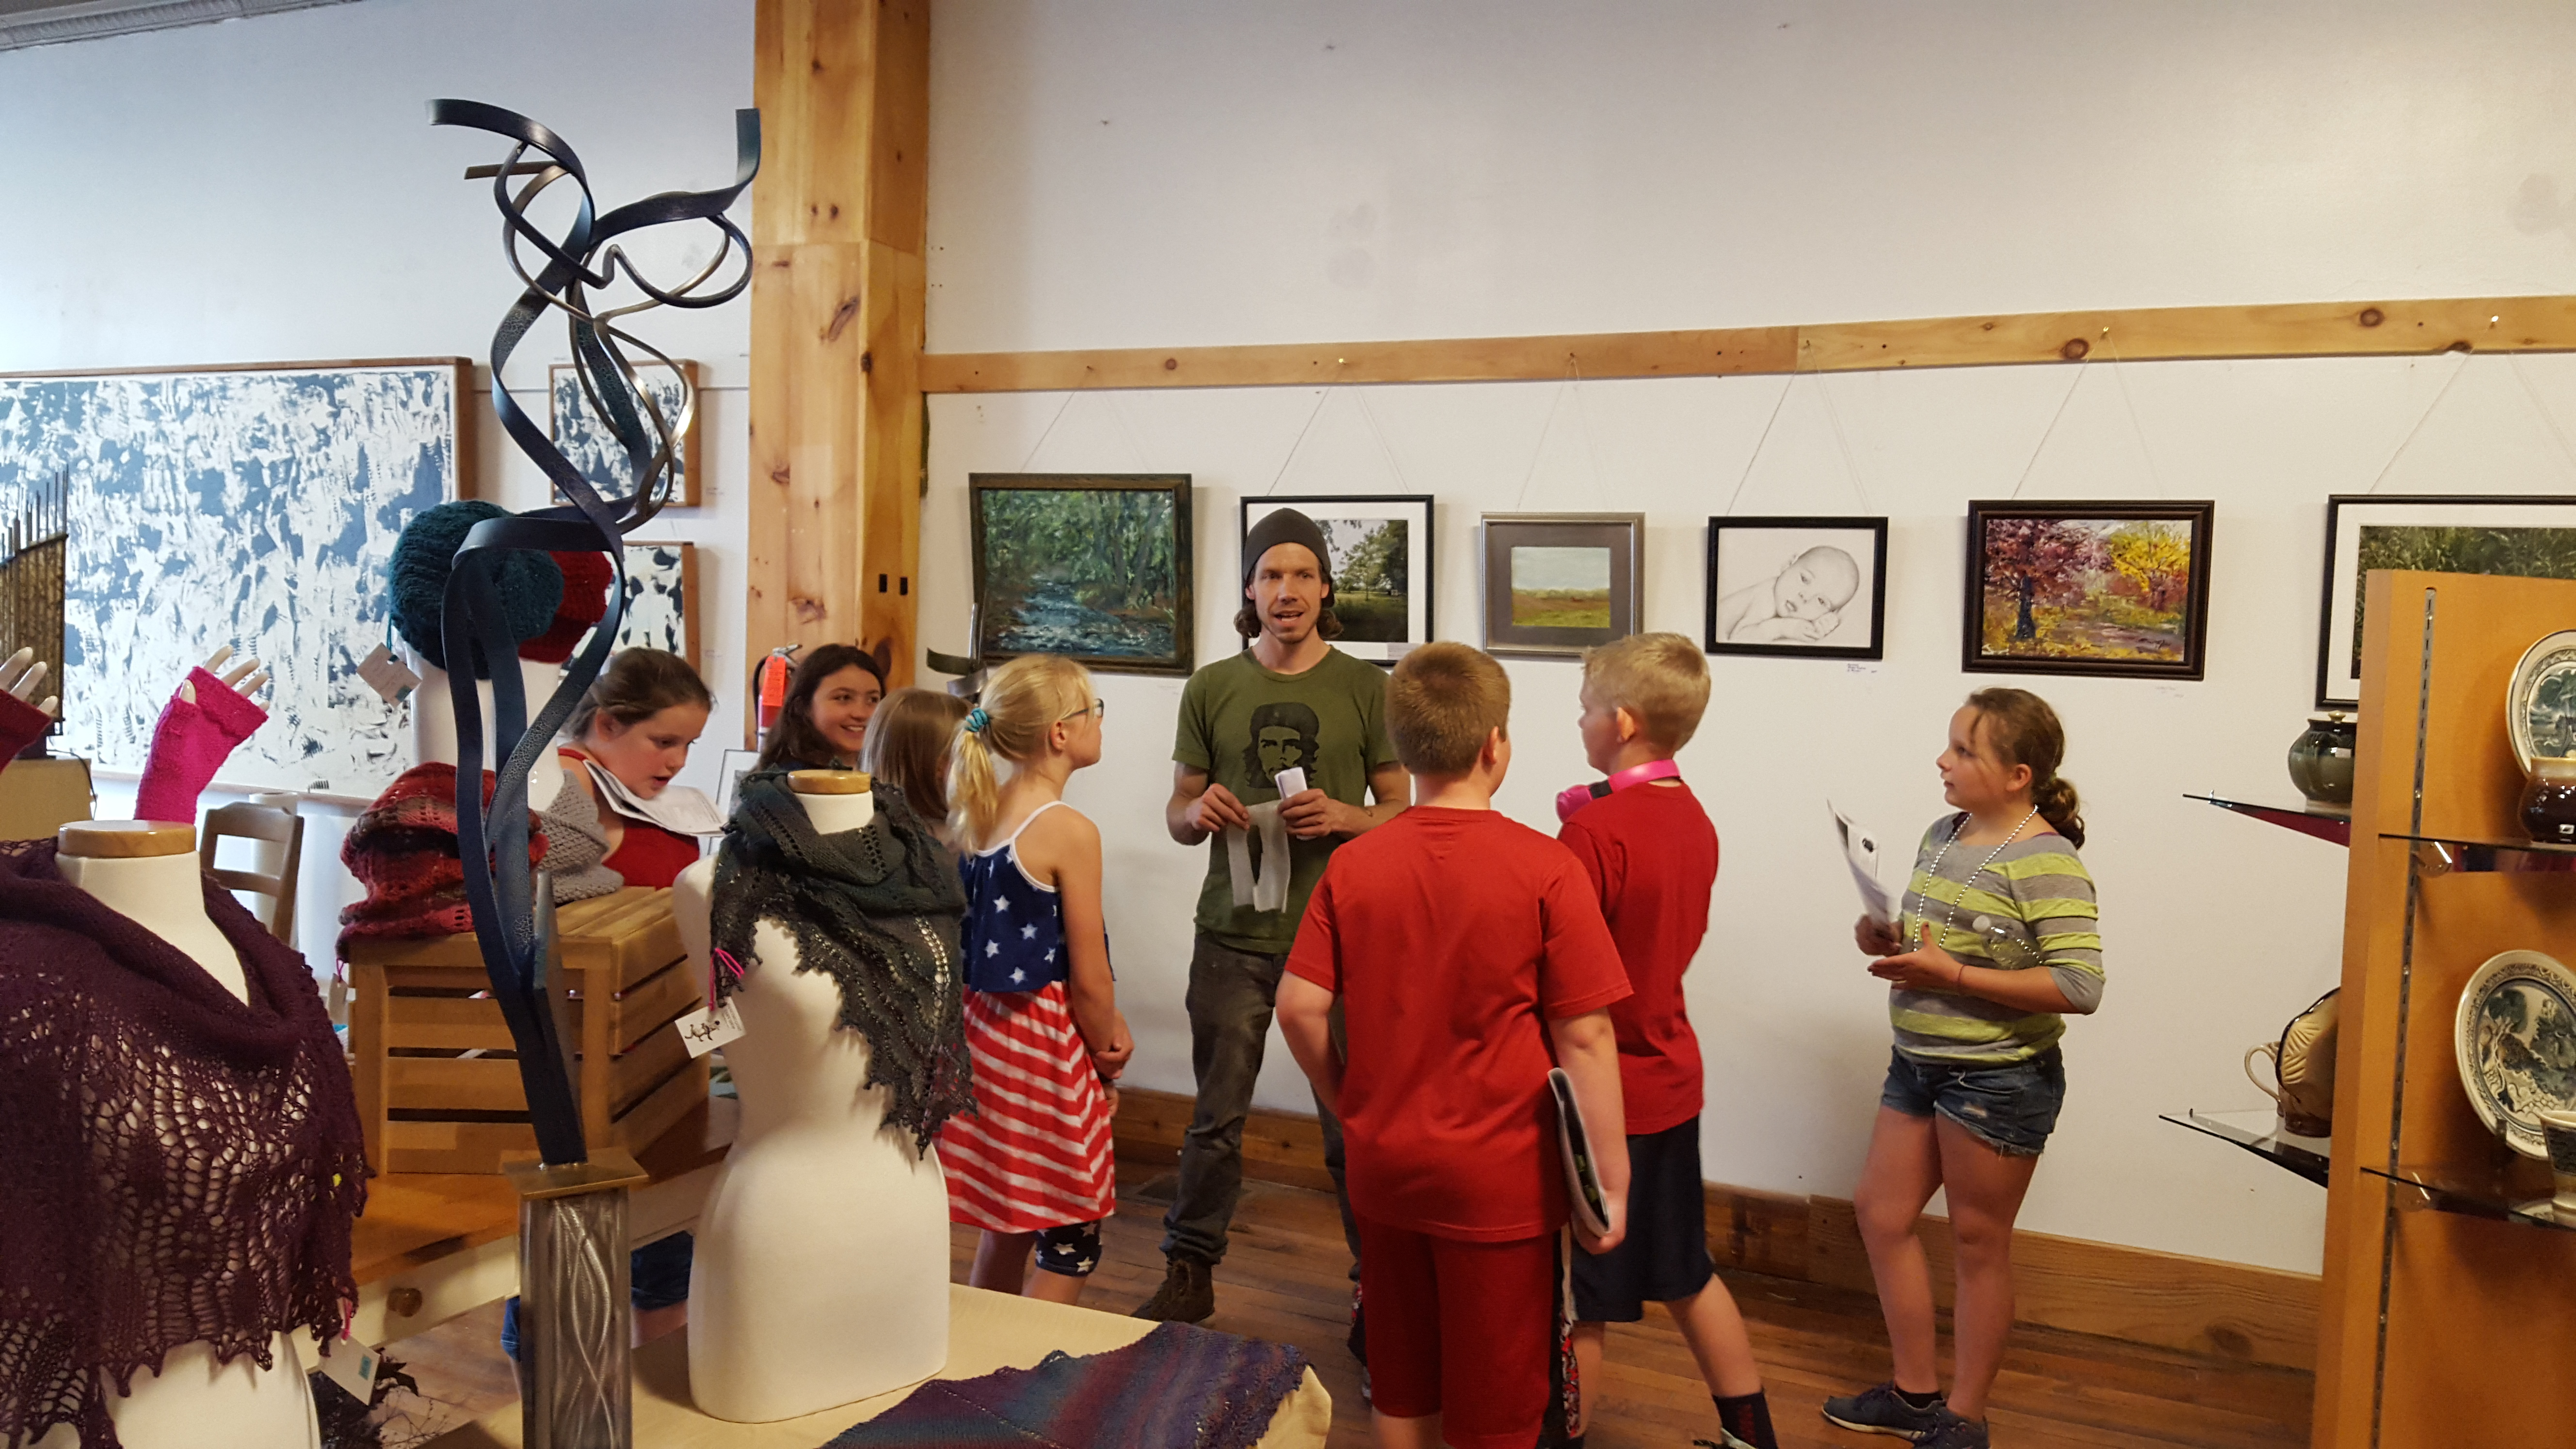 Arts Council of Wyoming hosts a gallery tour